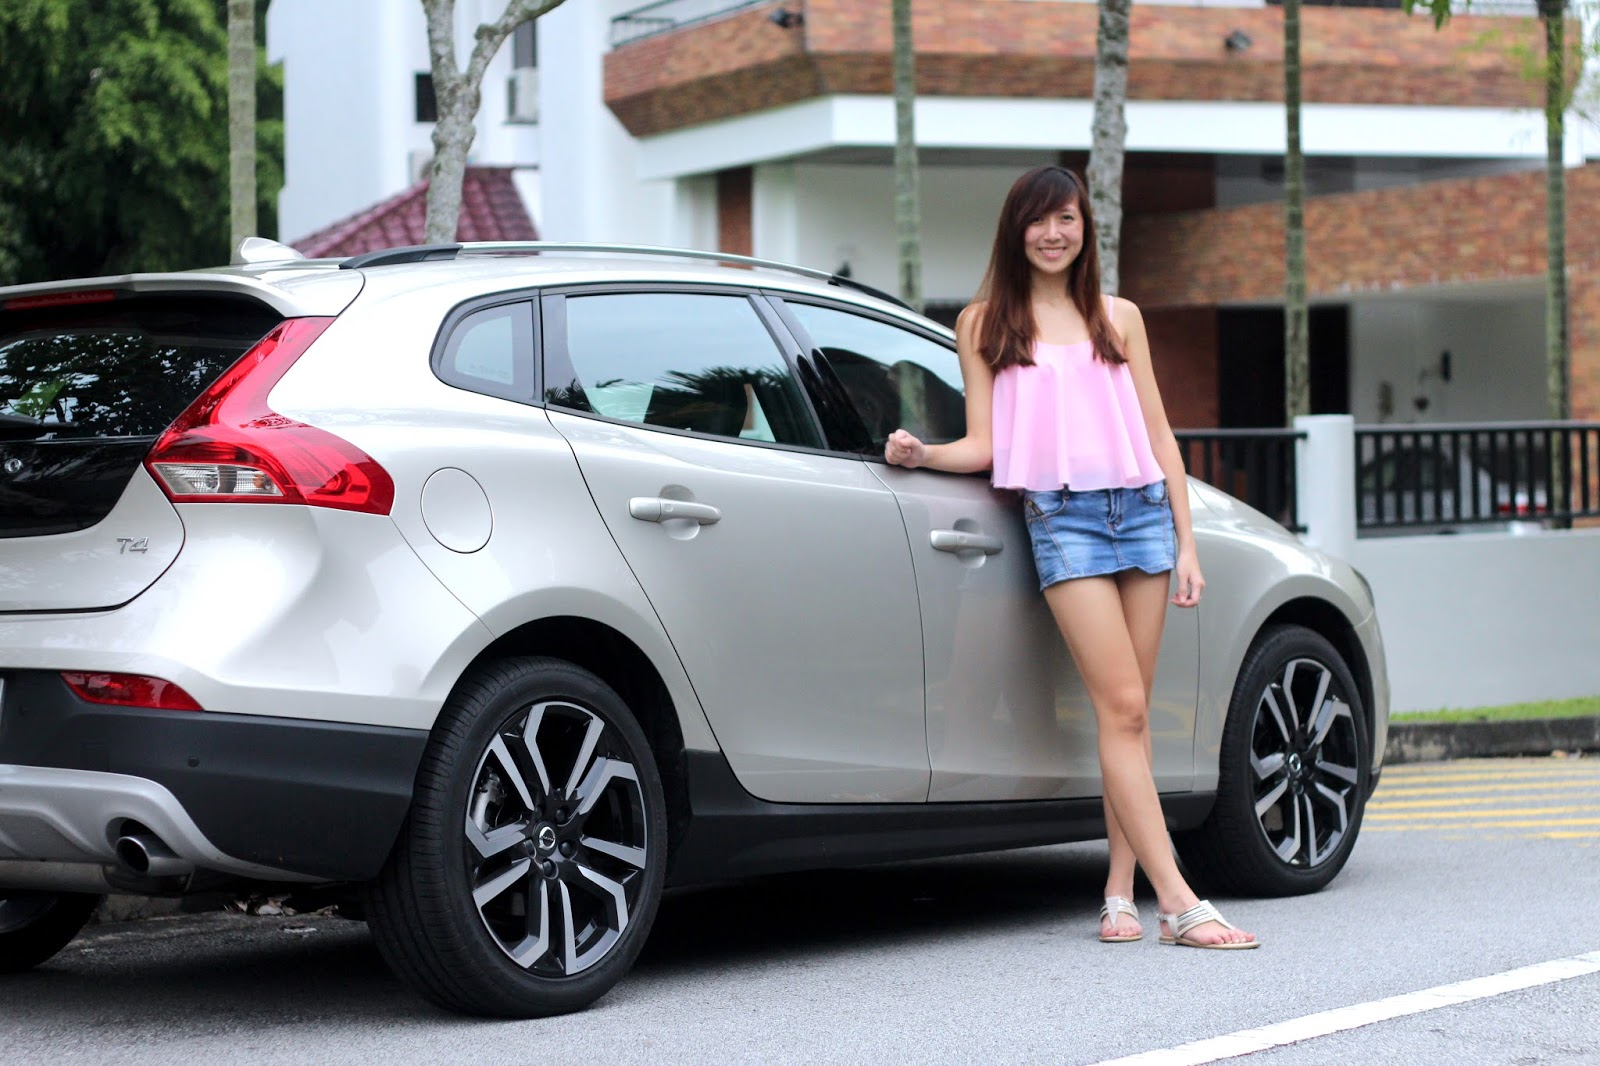 Volvo V40 Cross Country Review   The New Face of Volvo   Kaiting Hearts The New Volvo V40 Cross Country comes with a Dynamic chassis and is 40mm  higher than that of the Volvo V40  The rigid body and low centre of gravity  promote